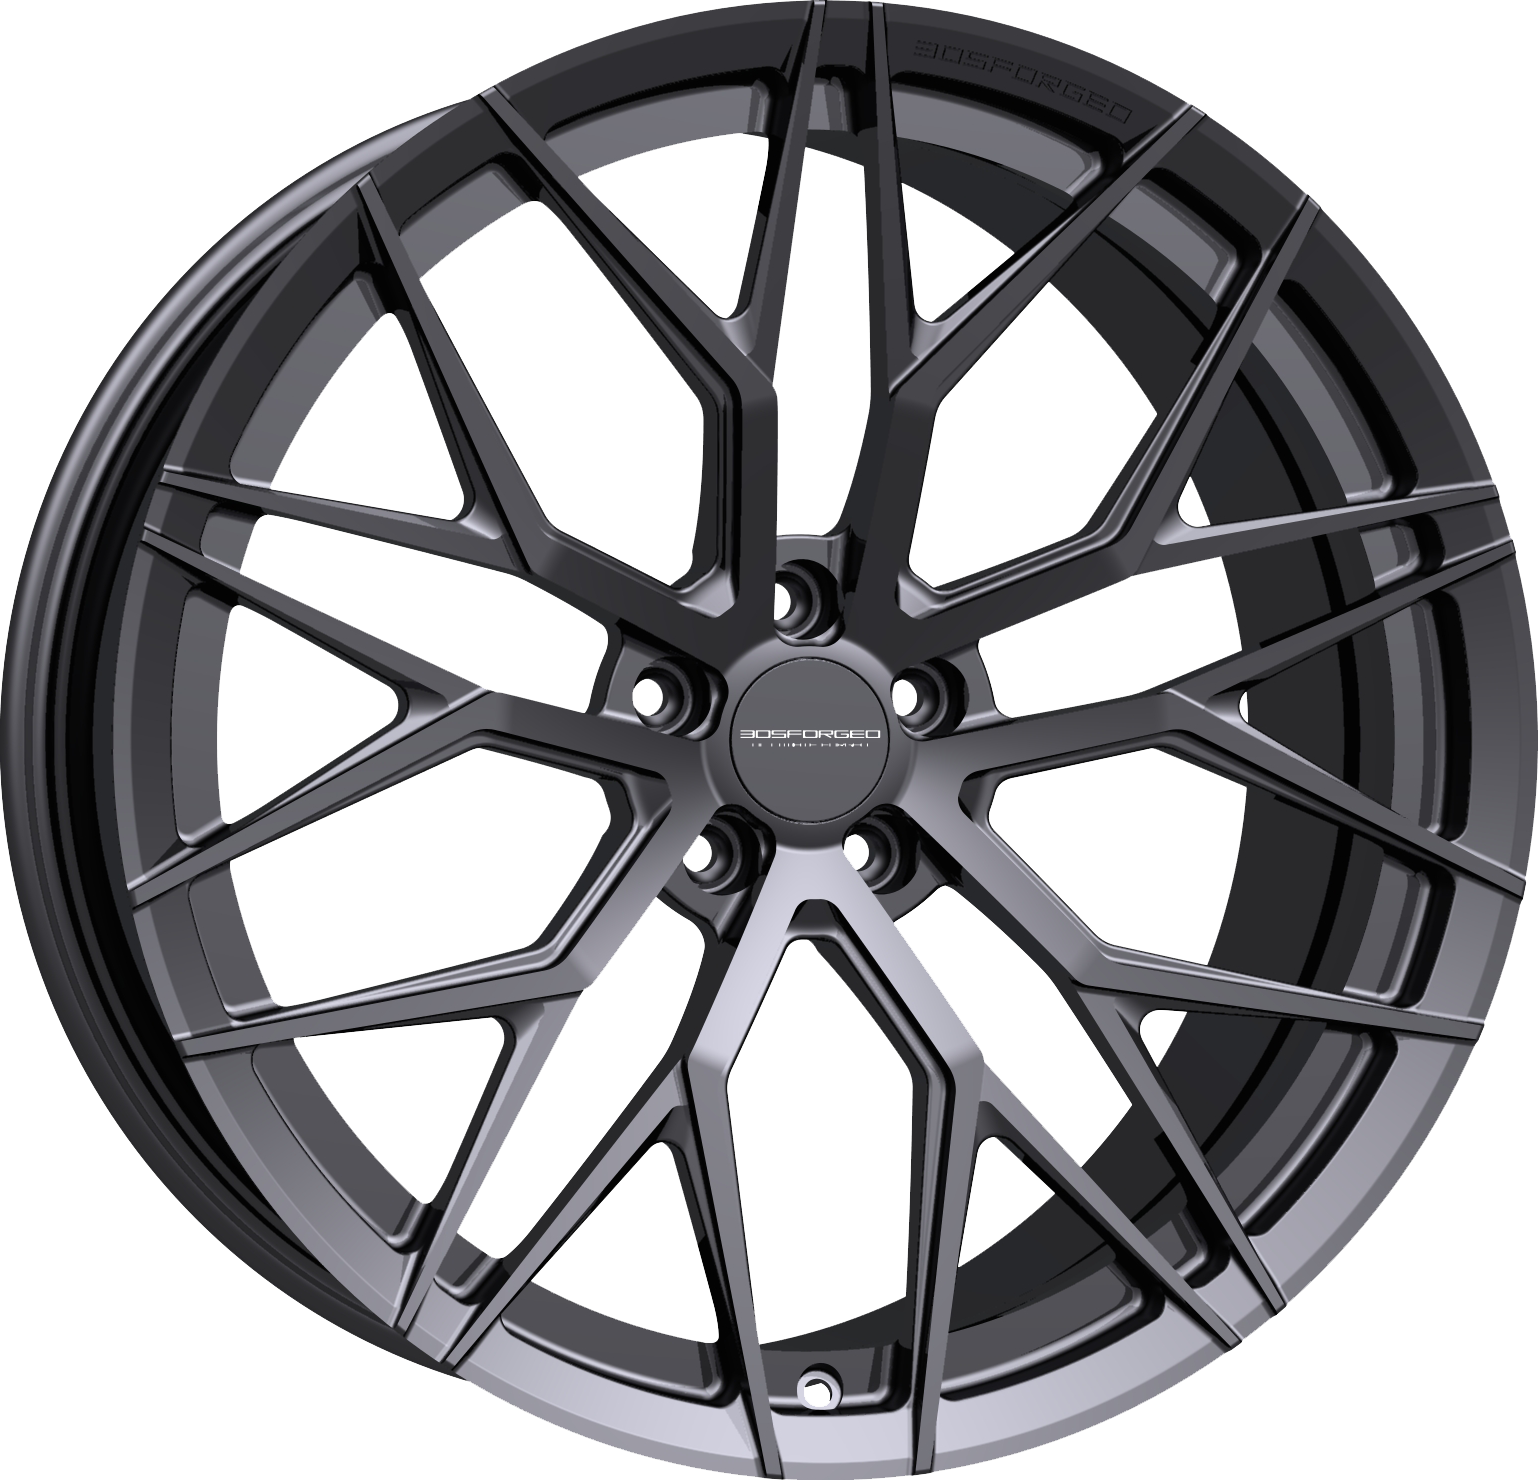 305 Forged UF103 forged wheels